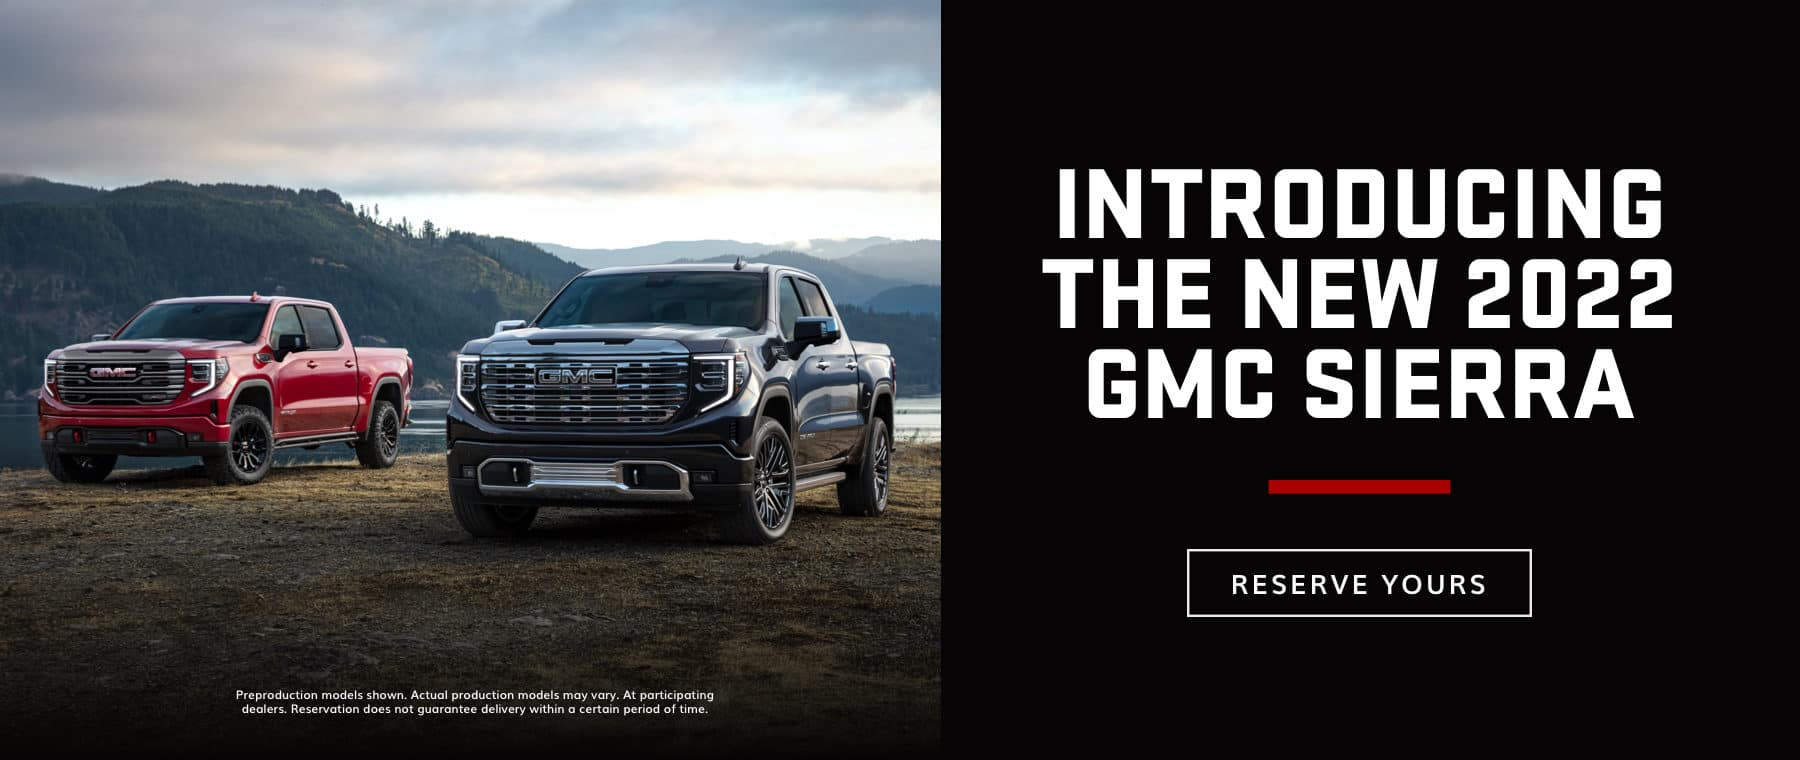 INTRODUCING THE NEW 2022 GMC SIERRA